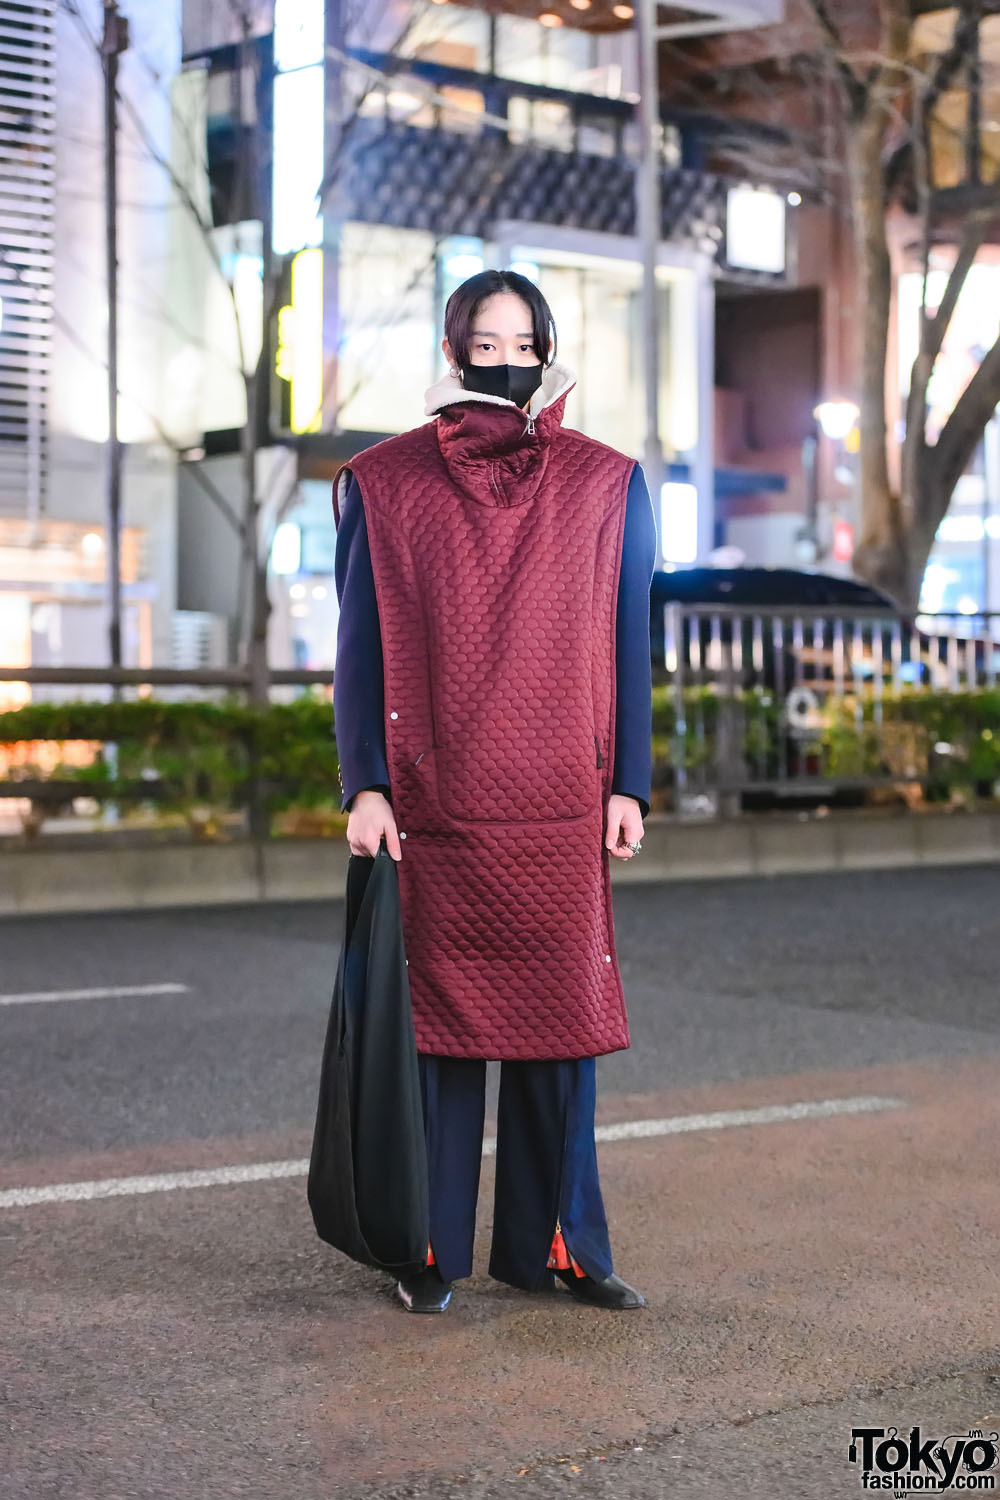 Quilted Overcoat Tokyo Fashion w/ Hatra Long Coat, Dior Blazer, Toga Flare Pants, Lilac Ruffle Tote, Gucci Statement Rings & Square Toe Boots